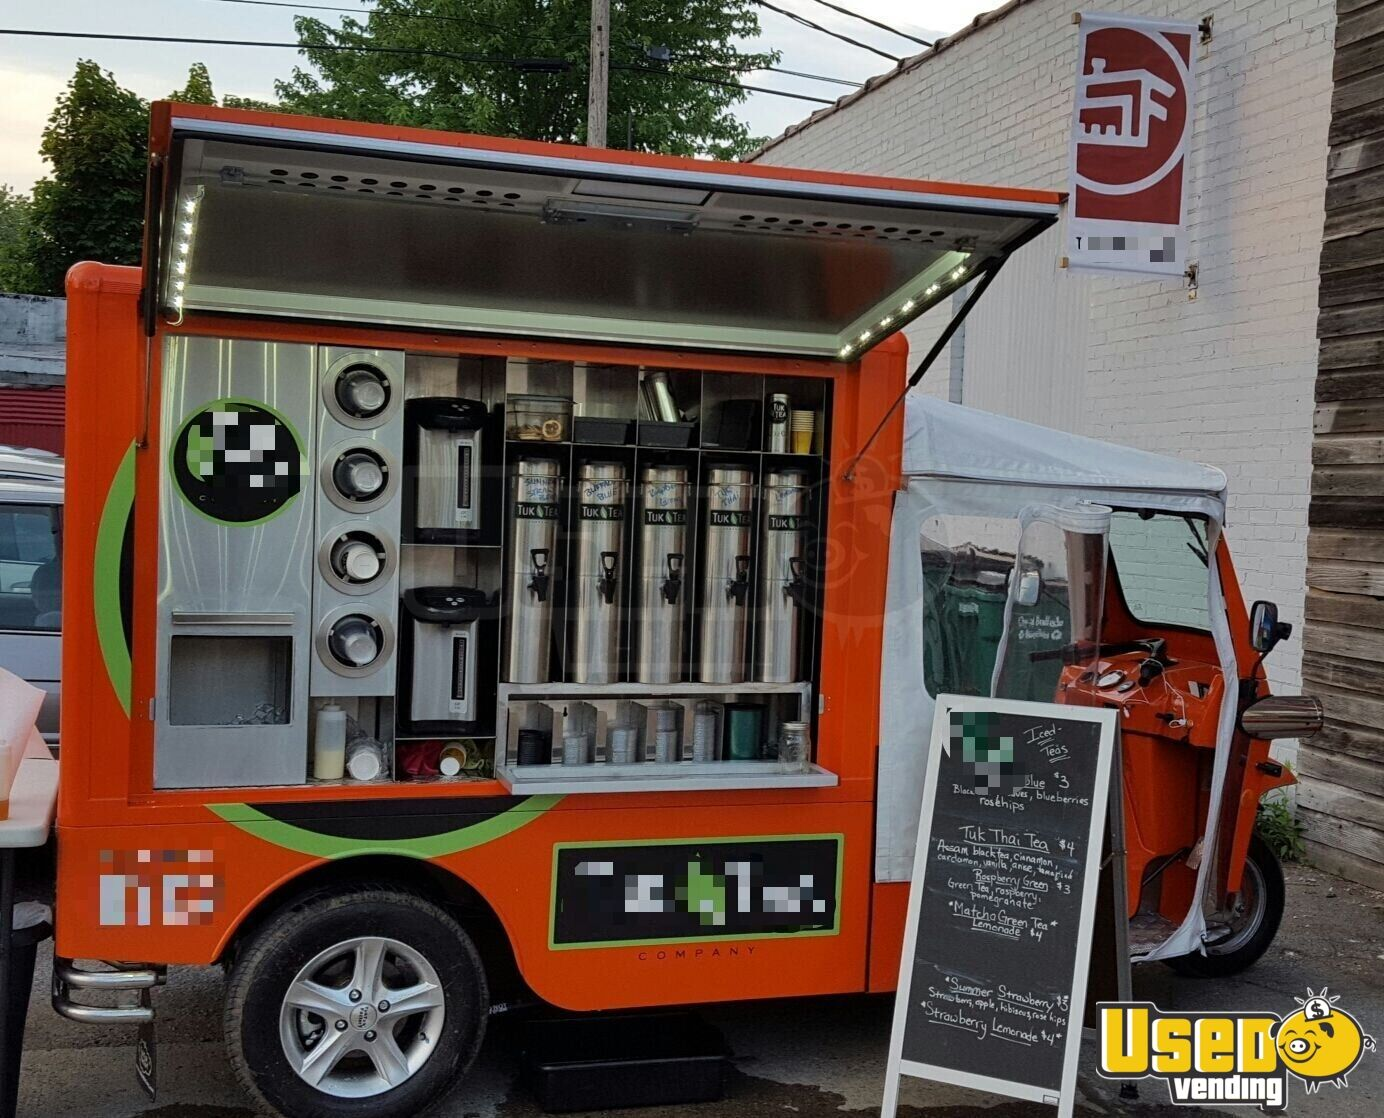 2015 Etuk Vendor Xl Coffee Truck Awning New York for Sale - 3